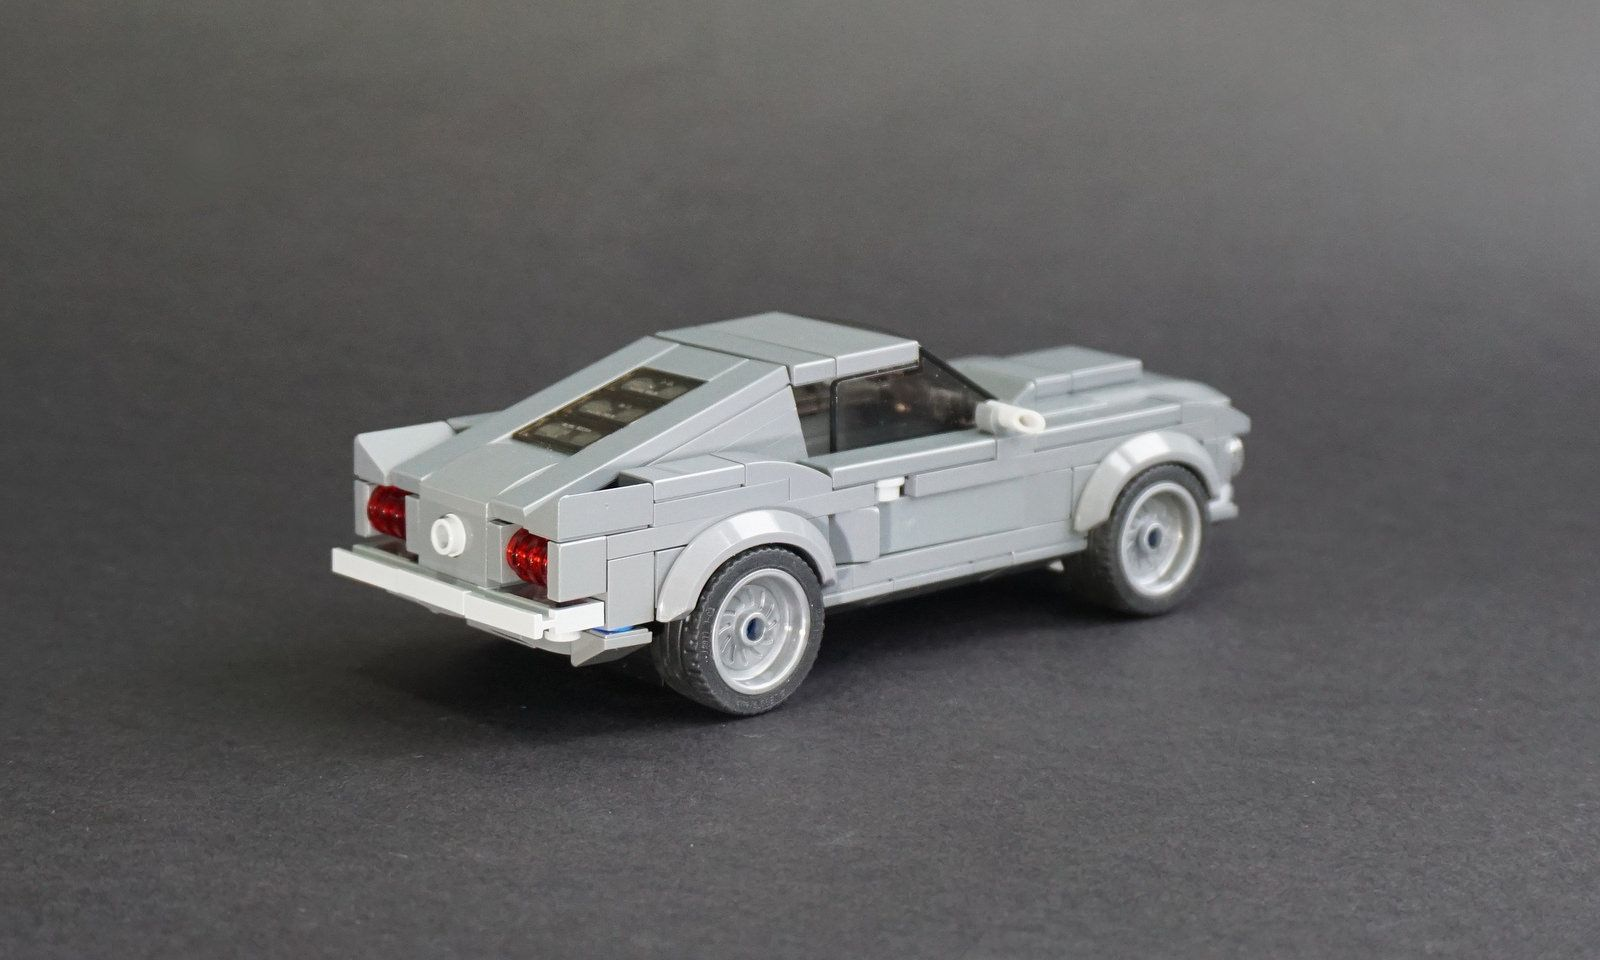 Lego 1968 Ford Mustang Fastback 02